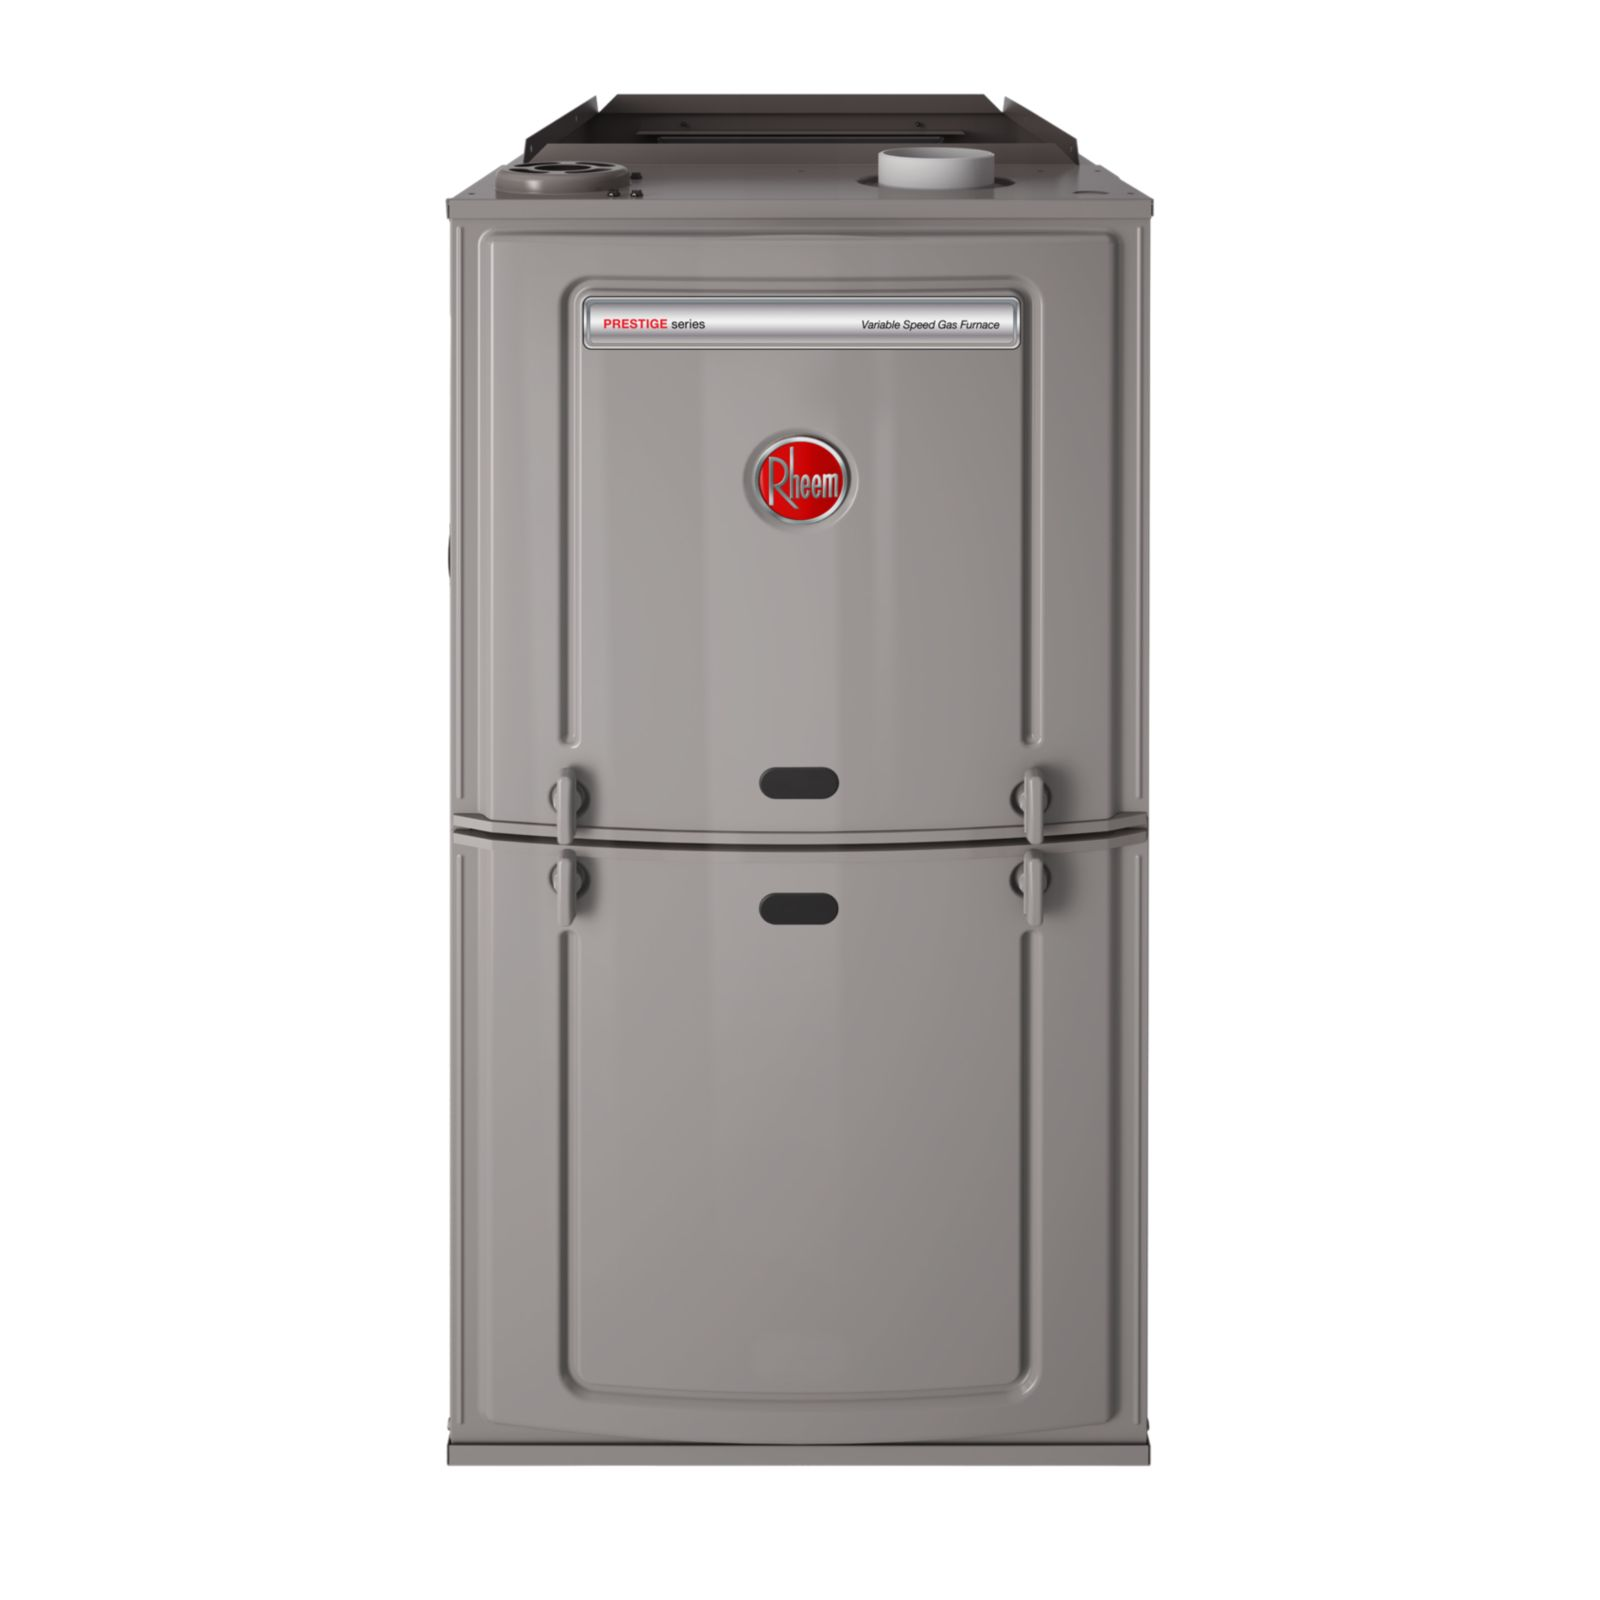 Rheem R802VA050317MSA - Prestige 80% Gas Furnace Two Stage Variable Speed, 50K BTU, Upflow/Horizontal, ECM Motor, Up to 3 Ton